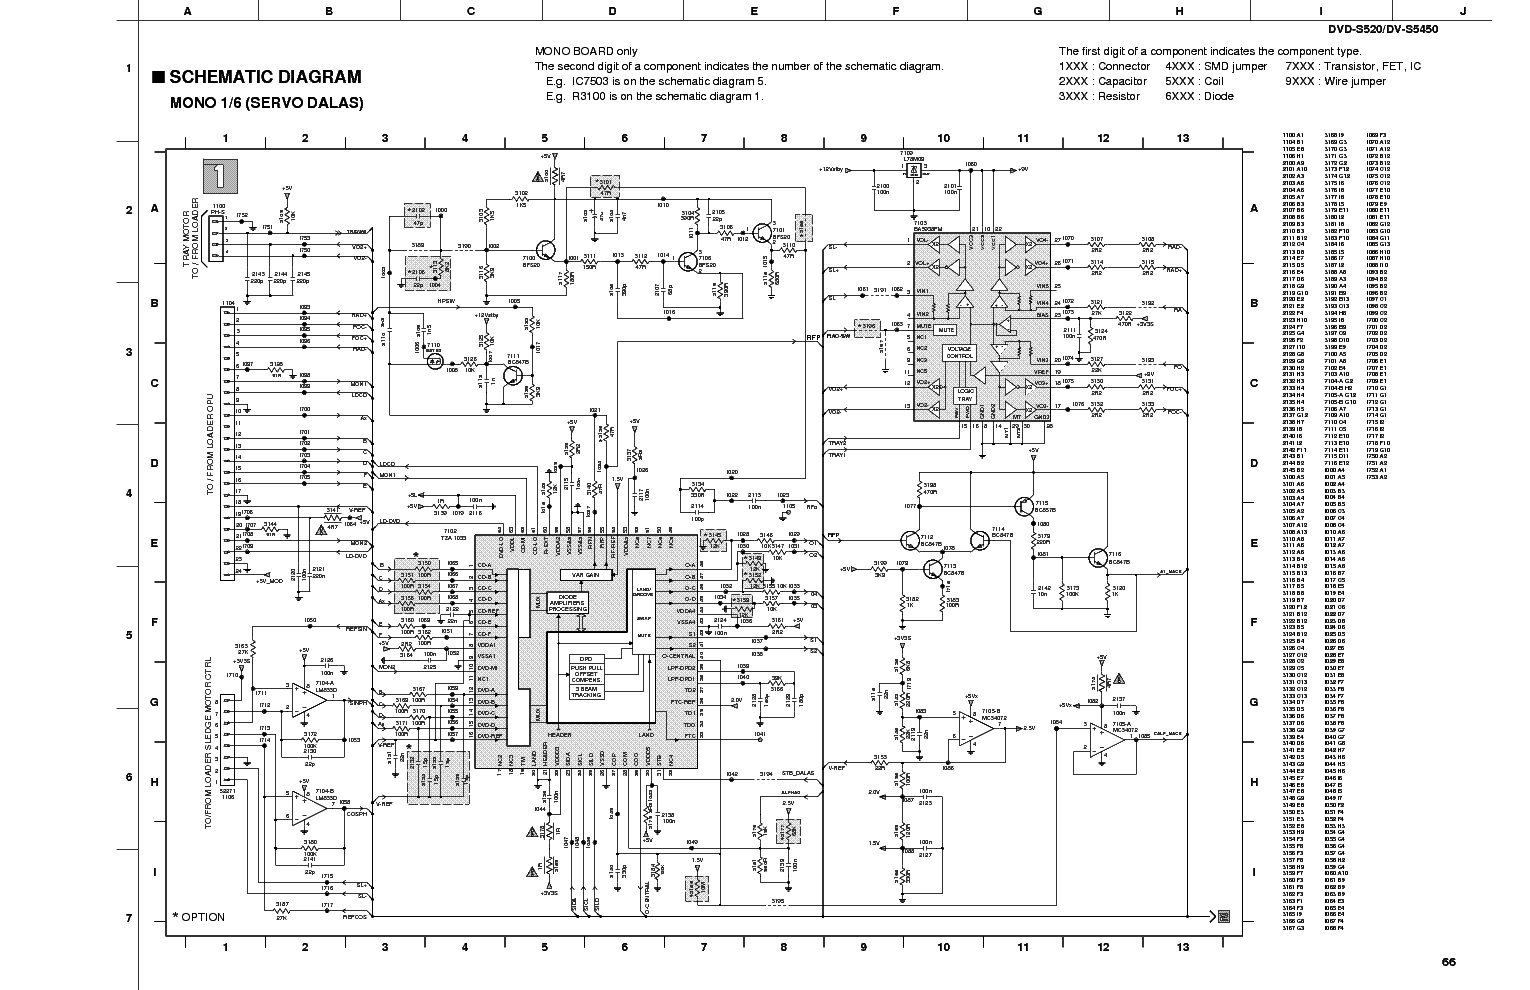 Free Download S520 Wiring Diagram Great Installation Of Automotive Electrical Diagrams Pdf Library Rh 13 Codingcommunity De Vehicle